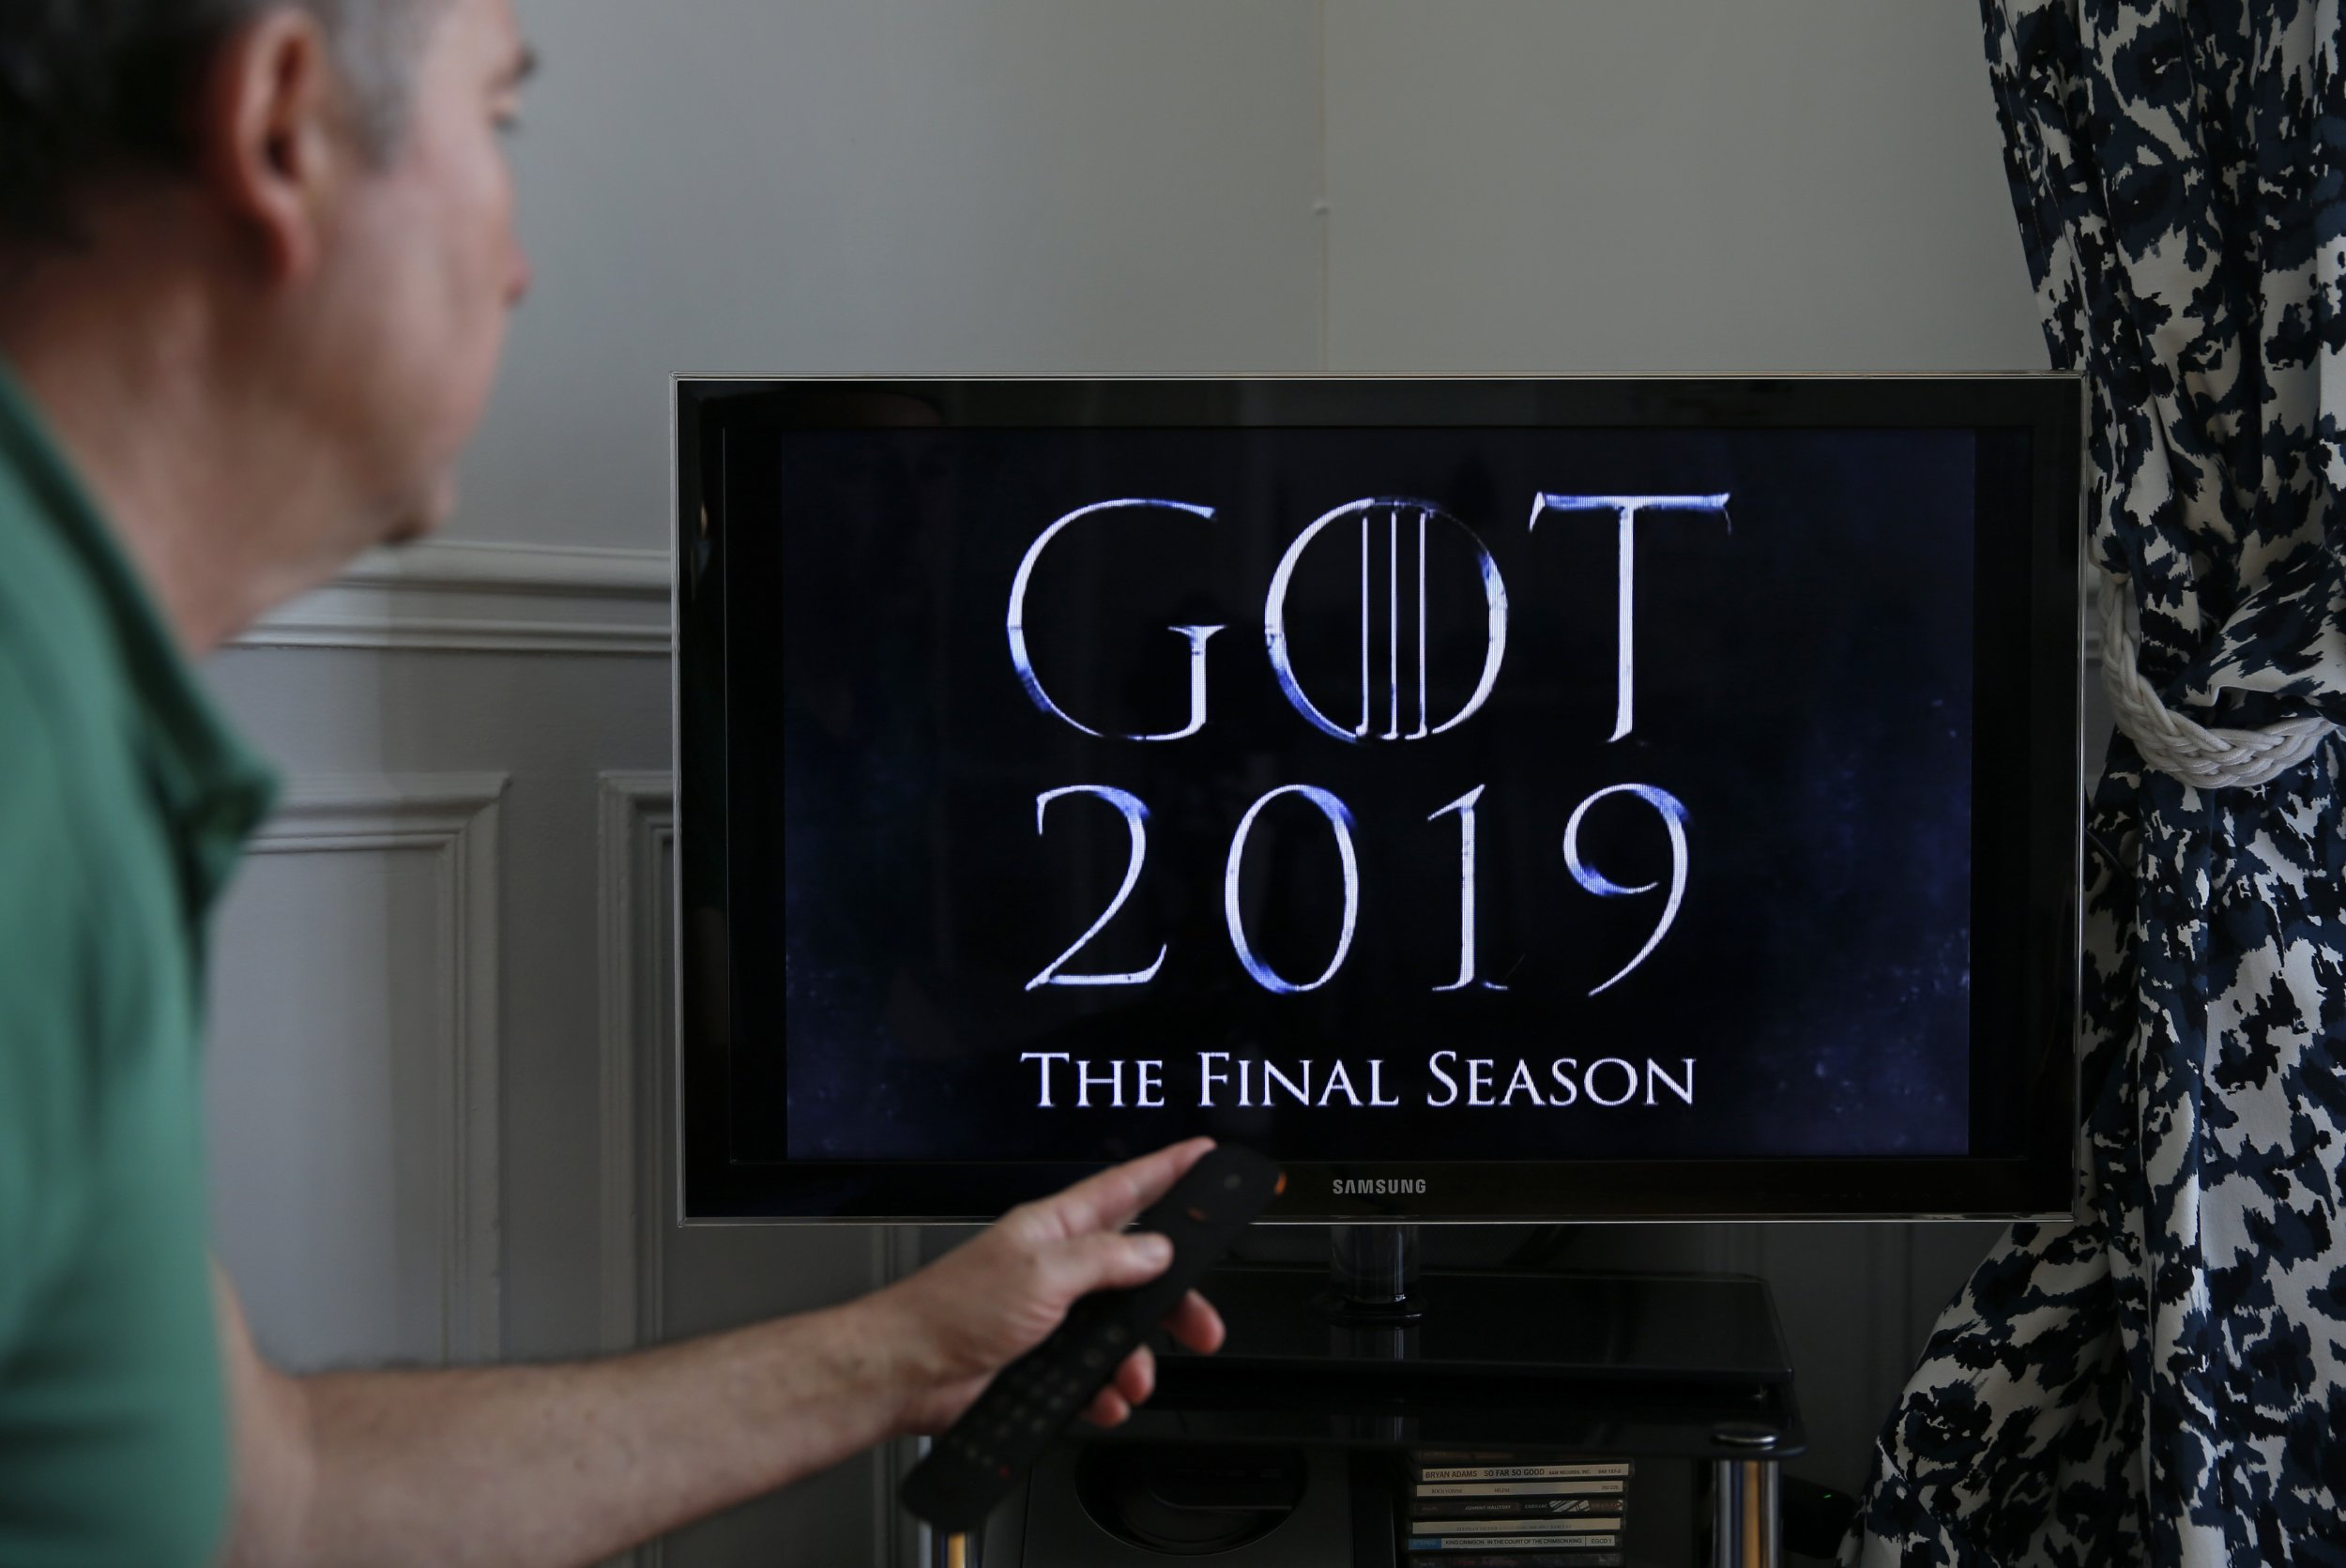 Will game of thrones stream live on hbo now